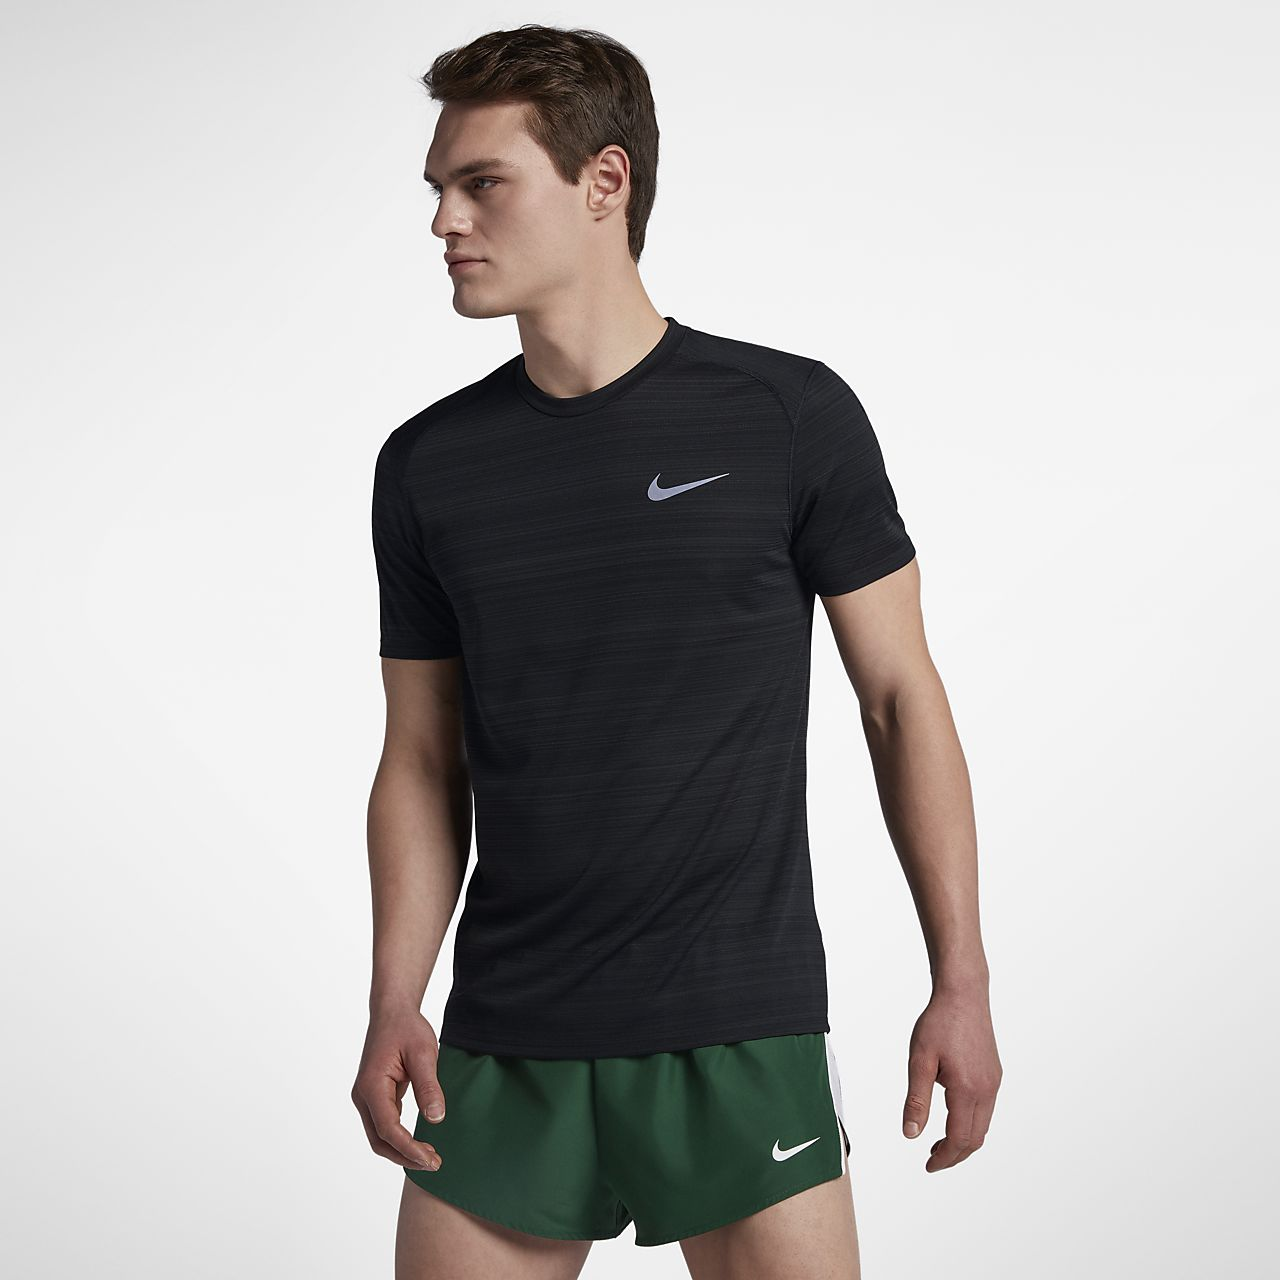 Shop our wide range of Long Sleeve Running Tops, for Men, Women and Children.